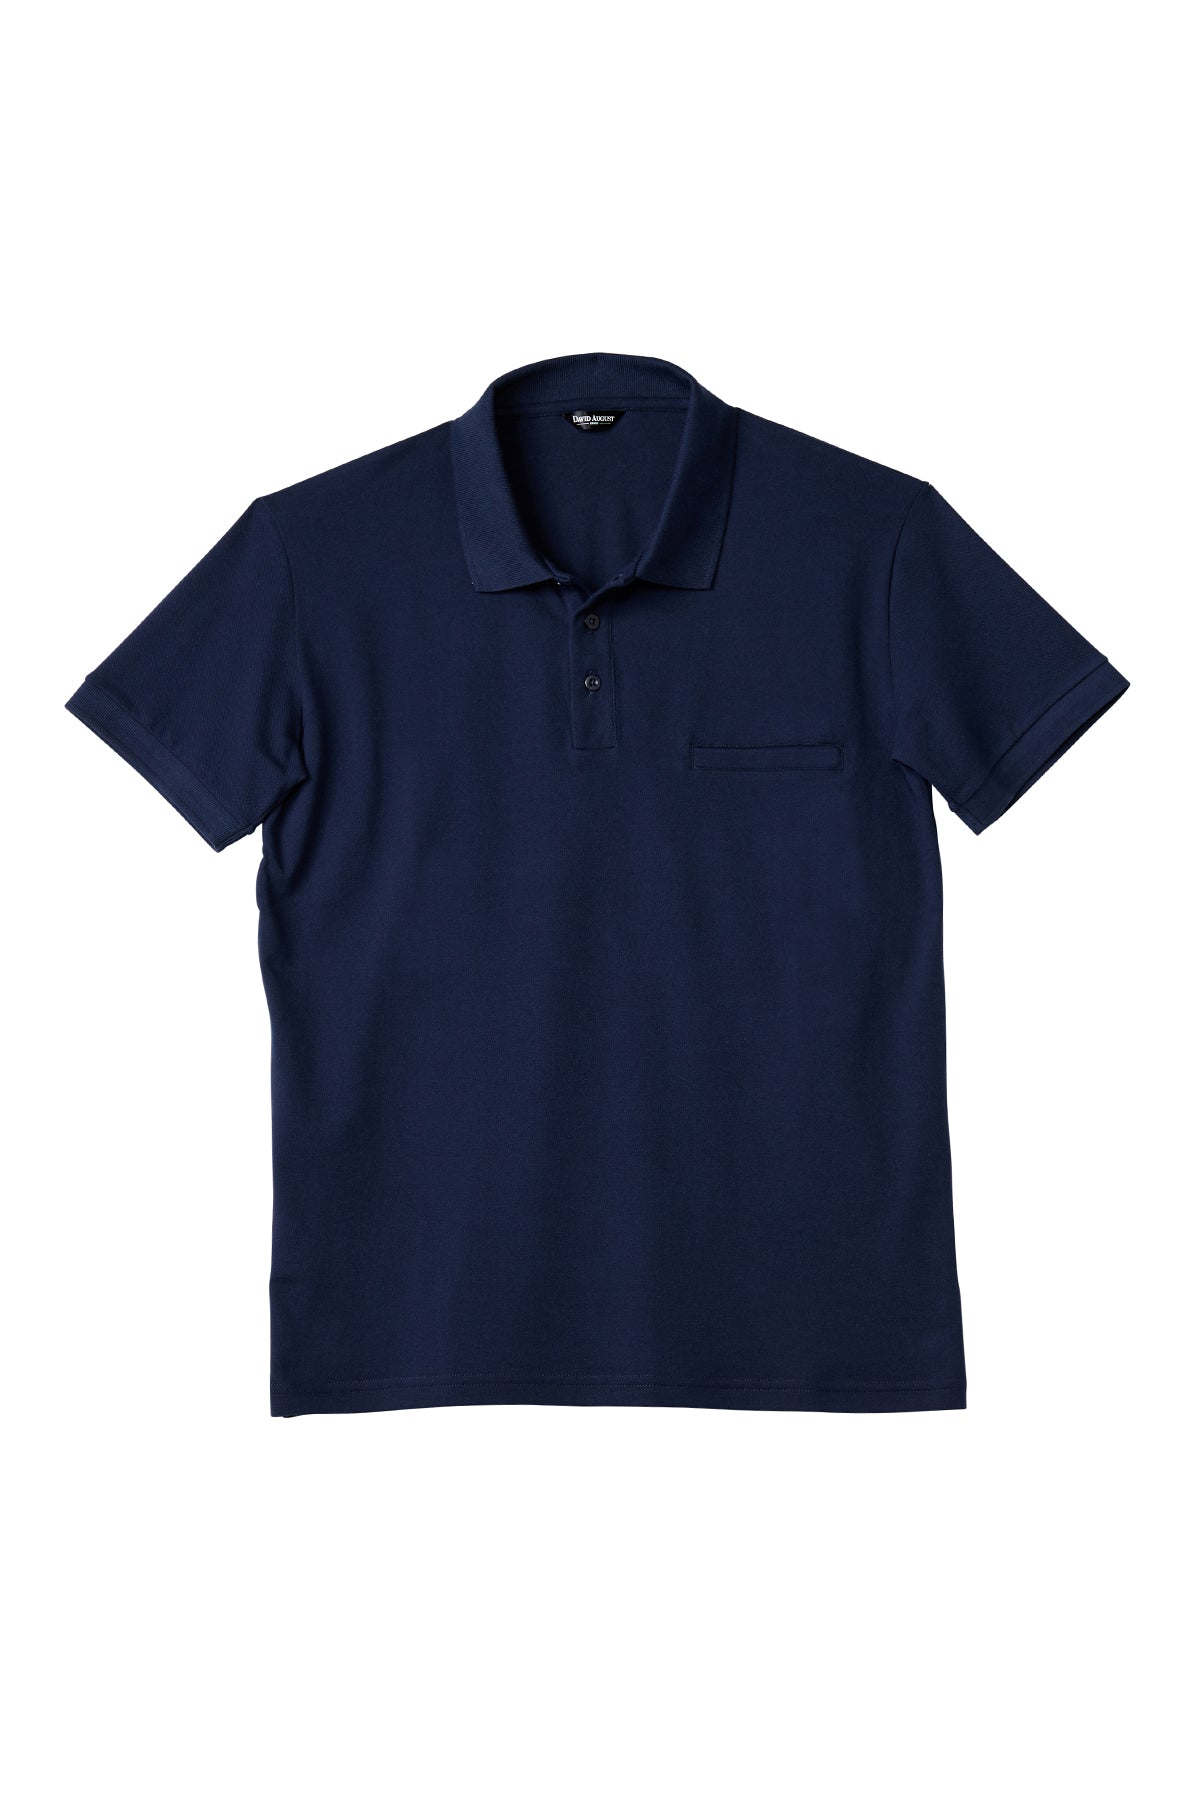 Luxury Pima Pique Cotton Polo in Navy